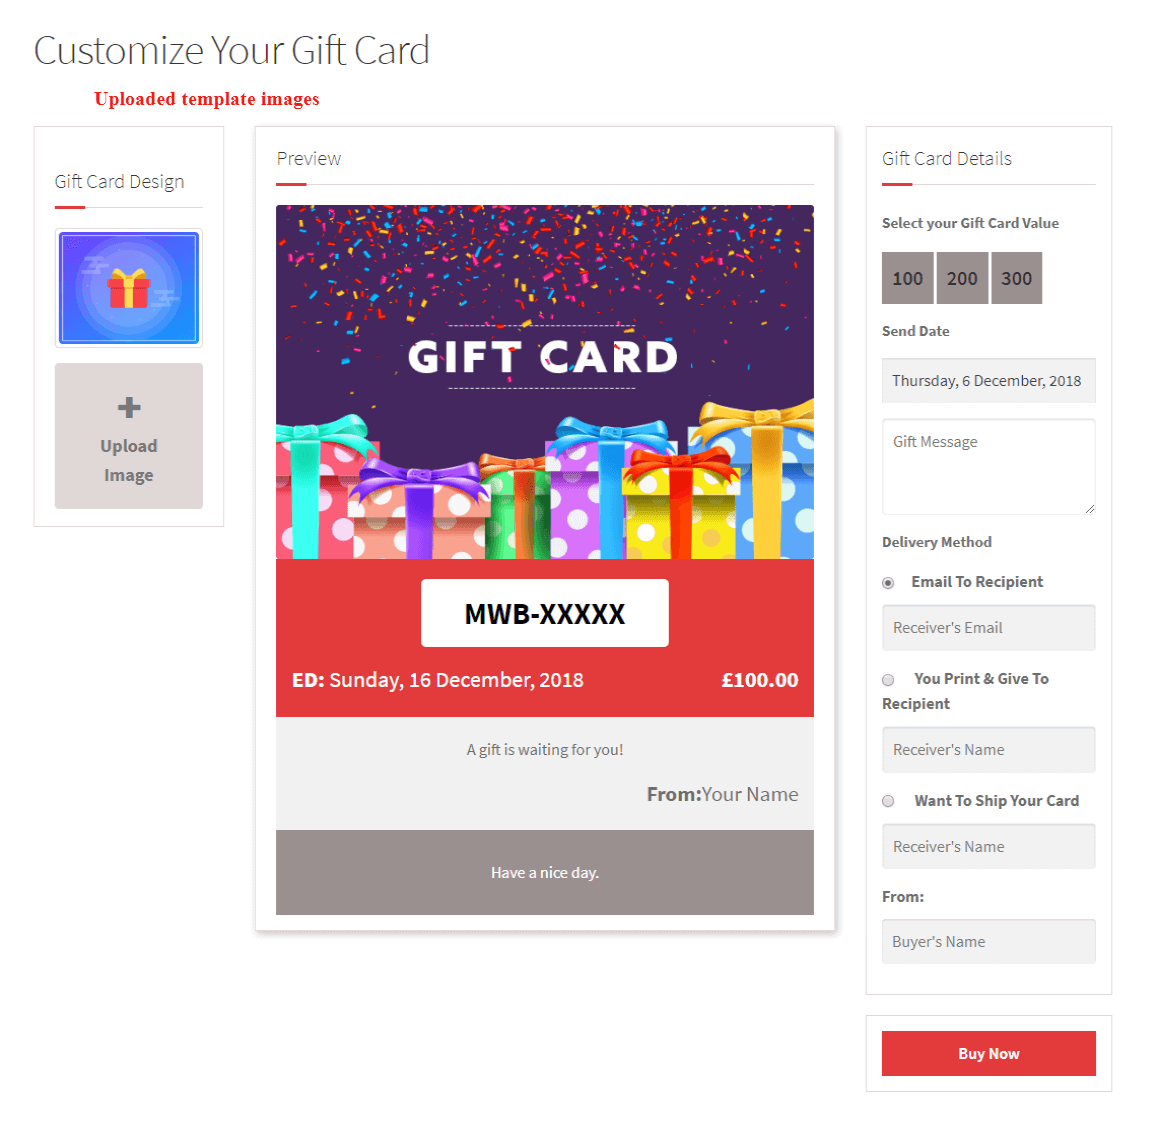 woocommerce-customizable-gift-card-uploaded-template-images-frontend